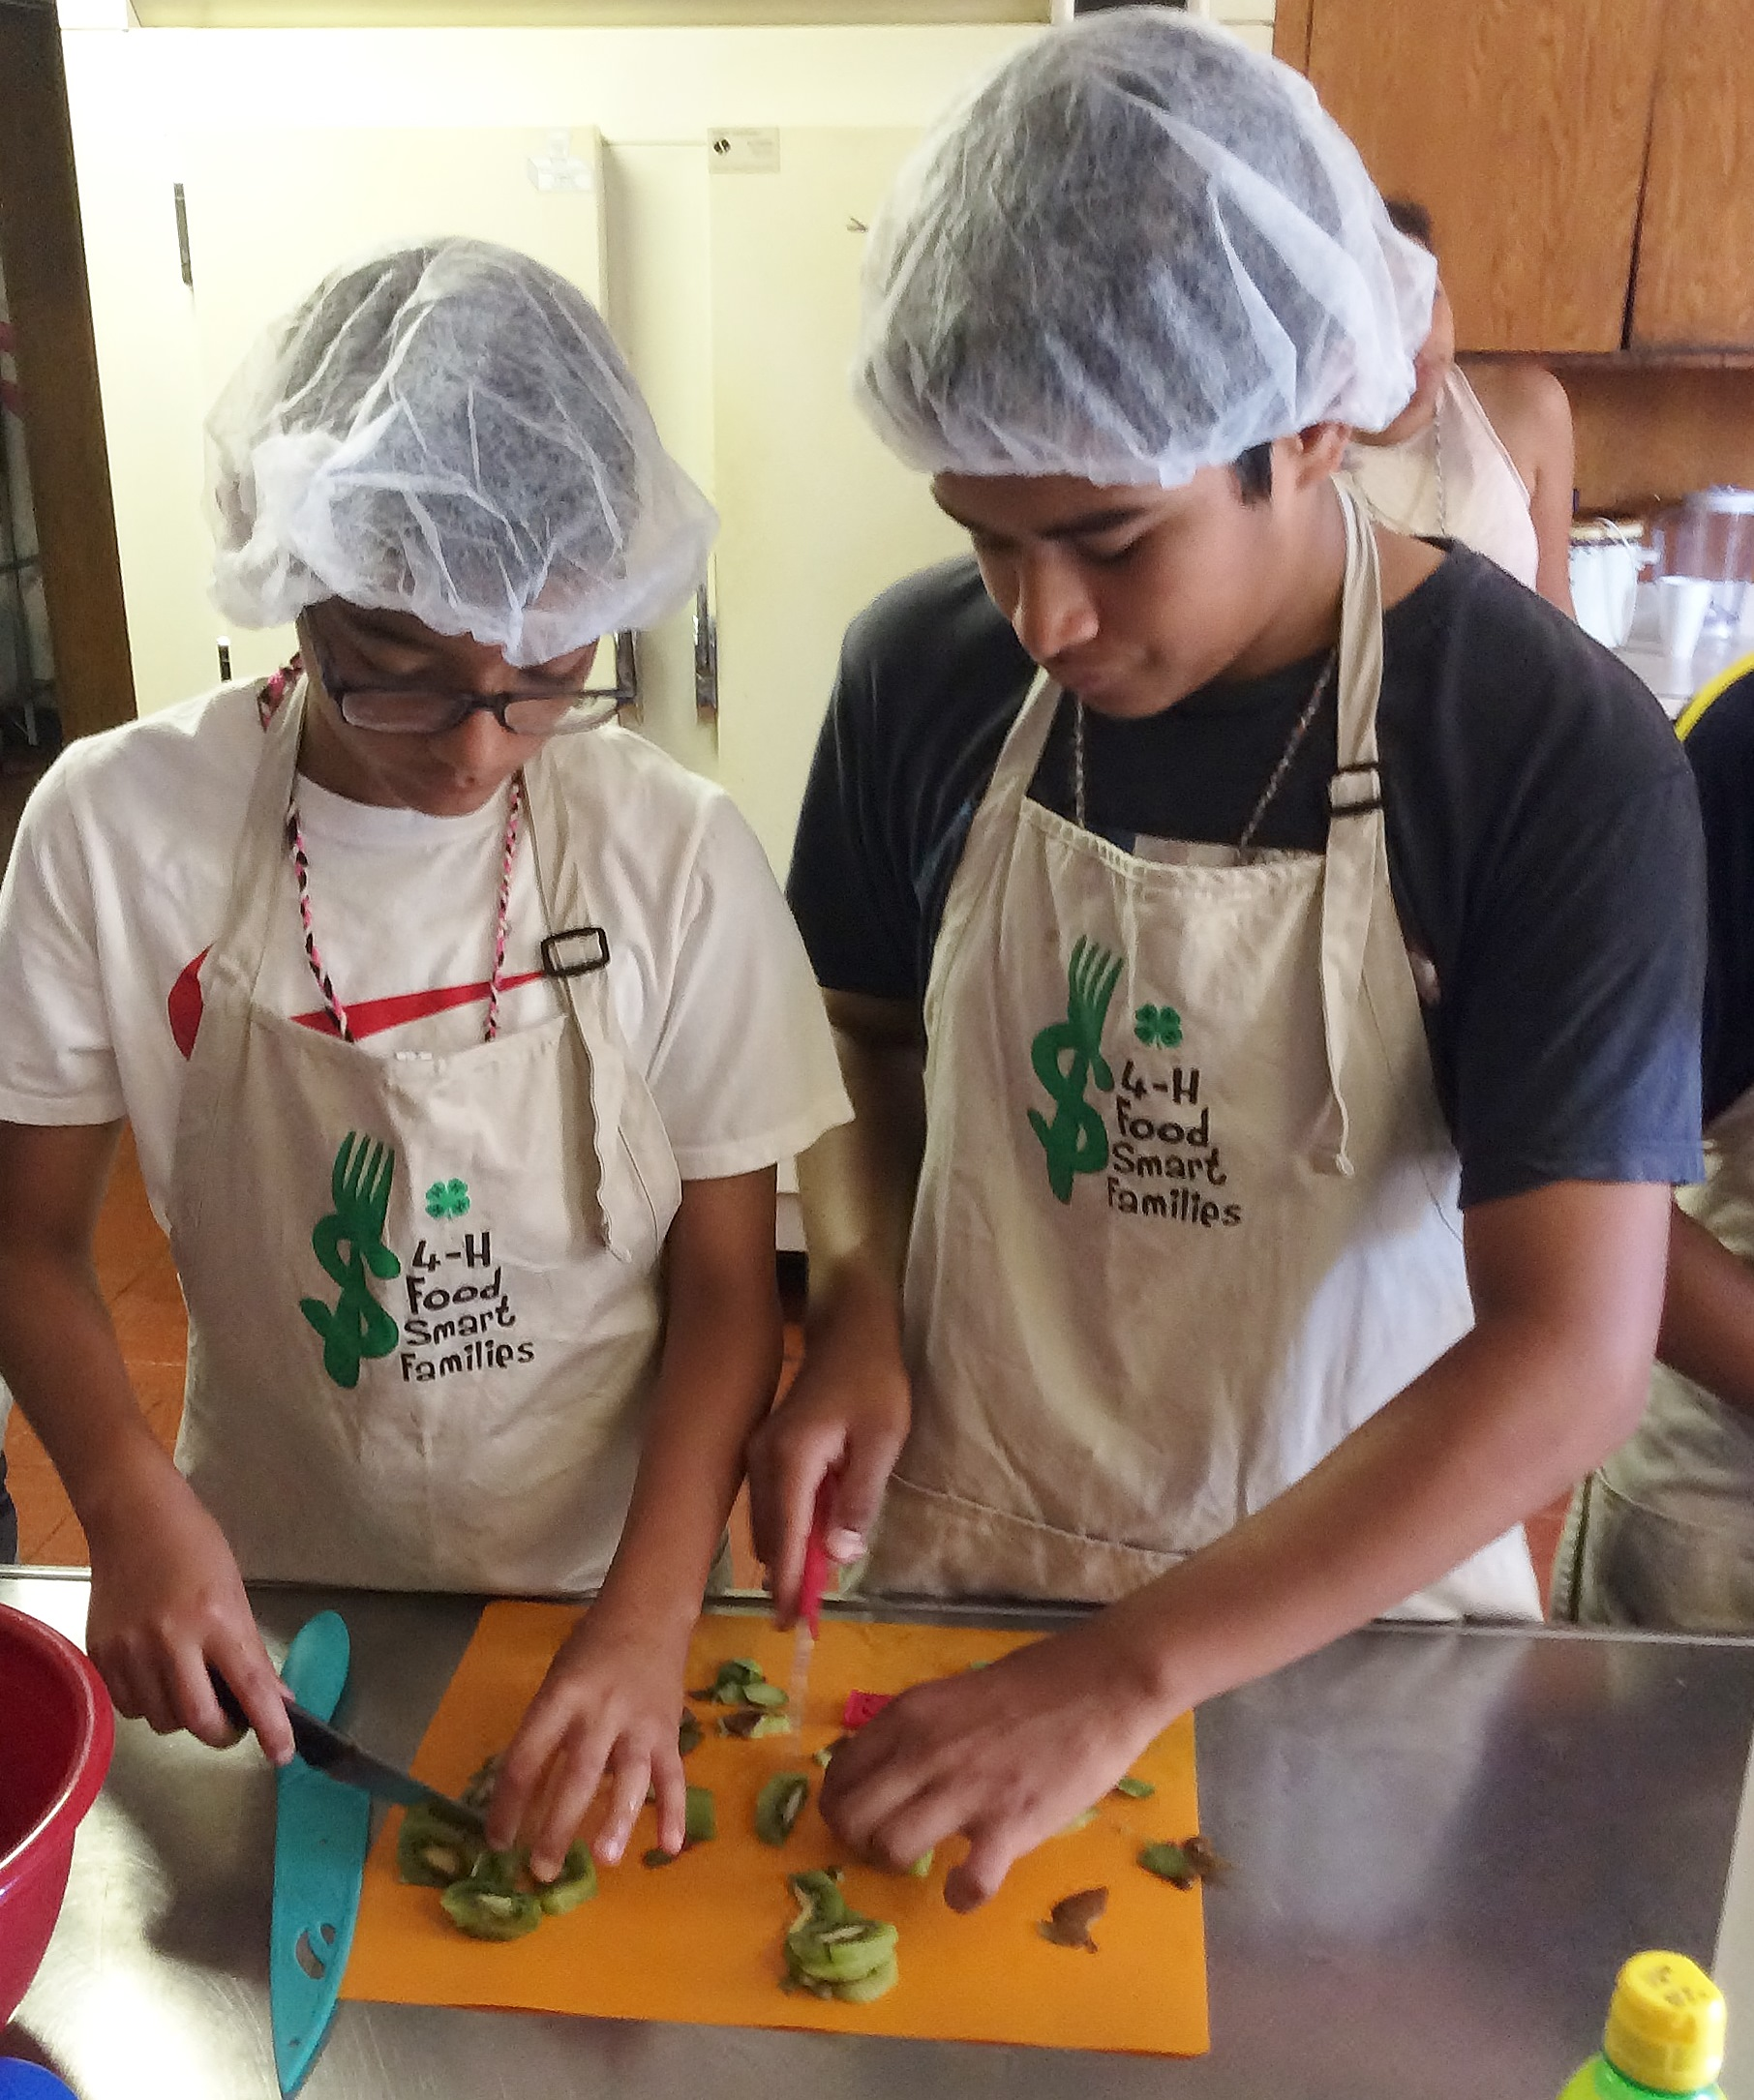 Teens teach cooking skills, become leaders in Lake, McHenry Counties